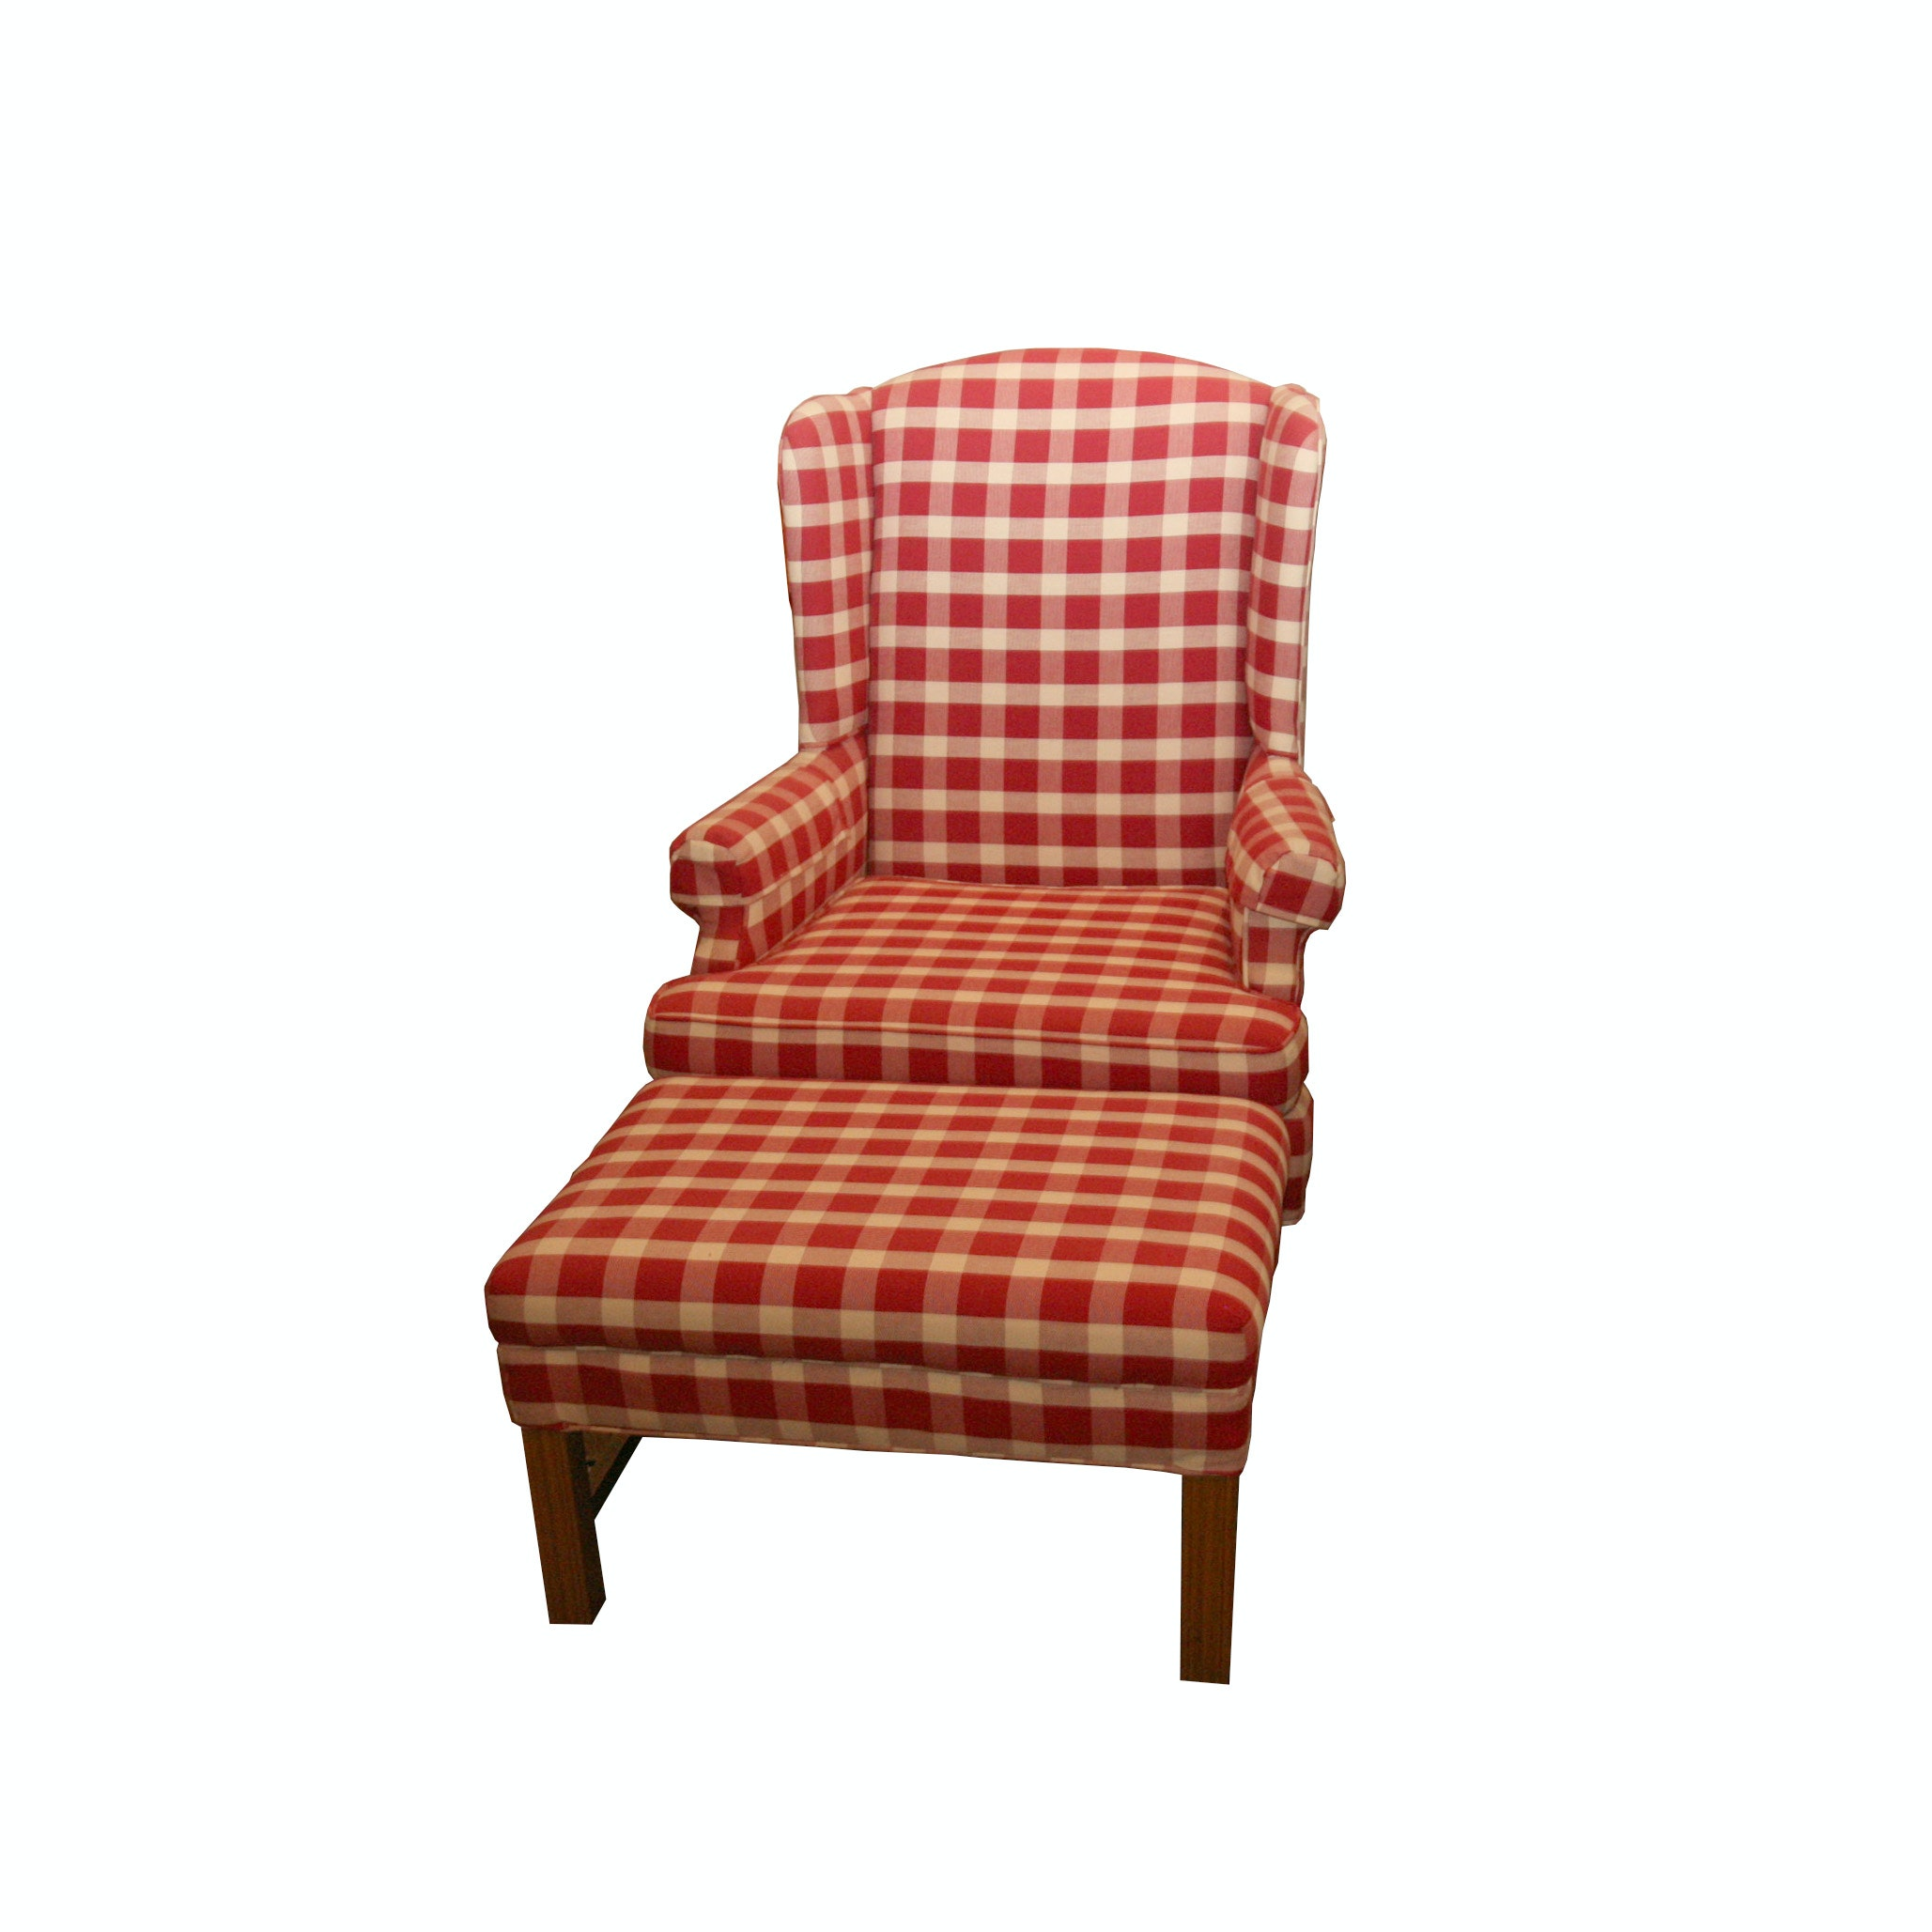 Contemporary Upholstered Wingback Chair and Ottoman by Marlow Furniture